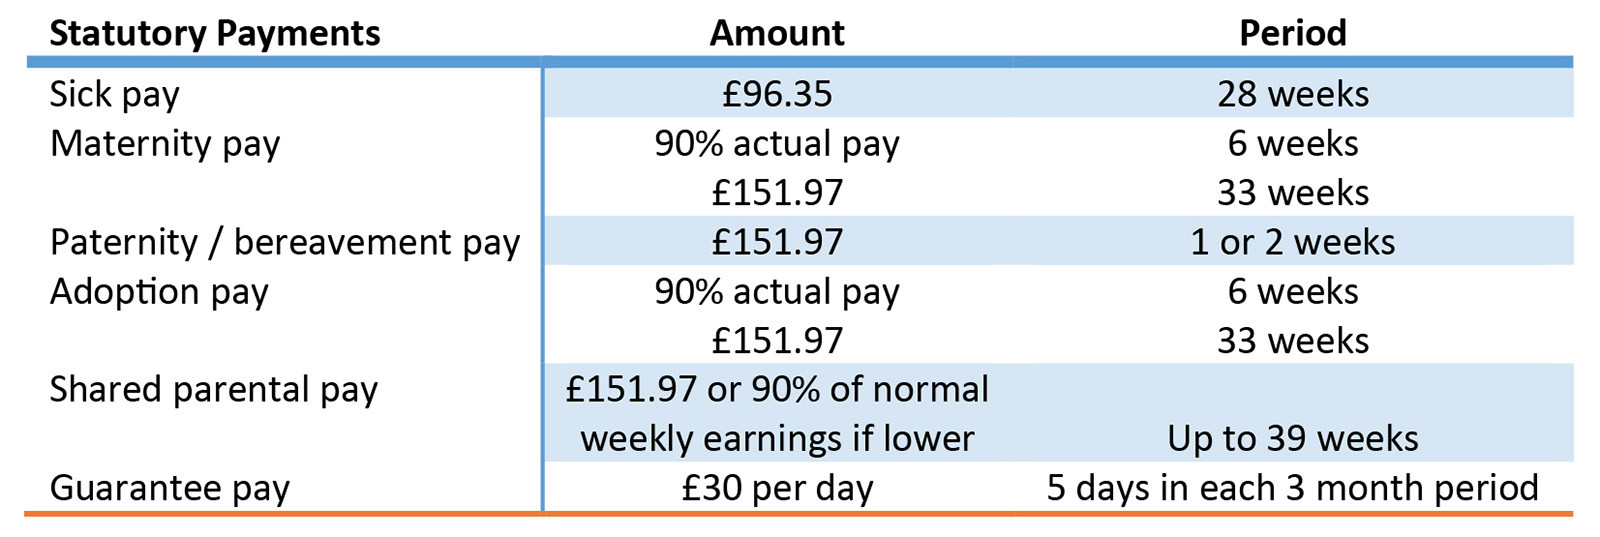 Employment Law - Statutory Payments